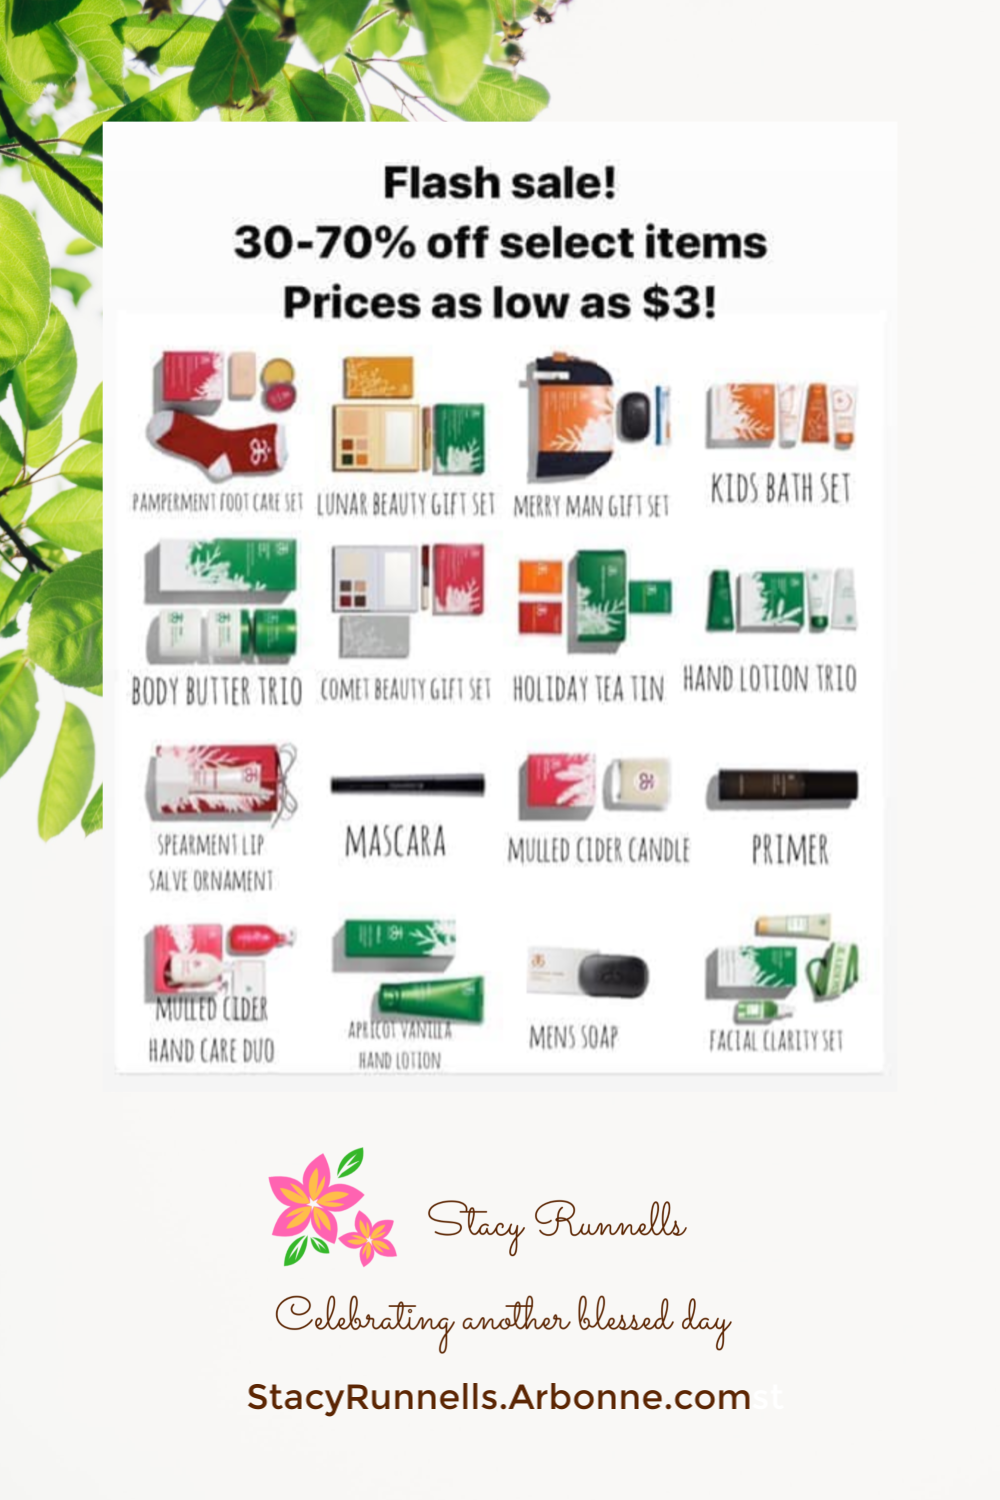 How To Shop Arbonne Holiday Sale 2019 Direct Sales Party Plan And Network Marketing Companies Member Article By Stacy Runnells